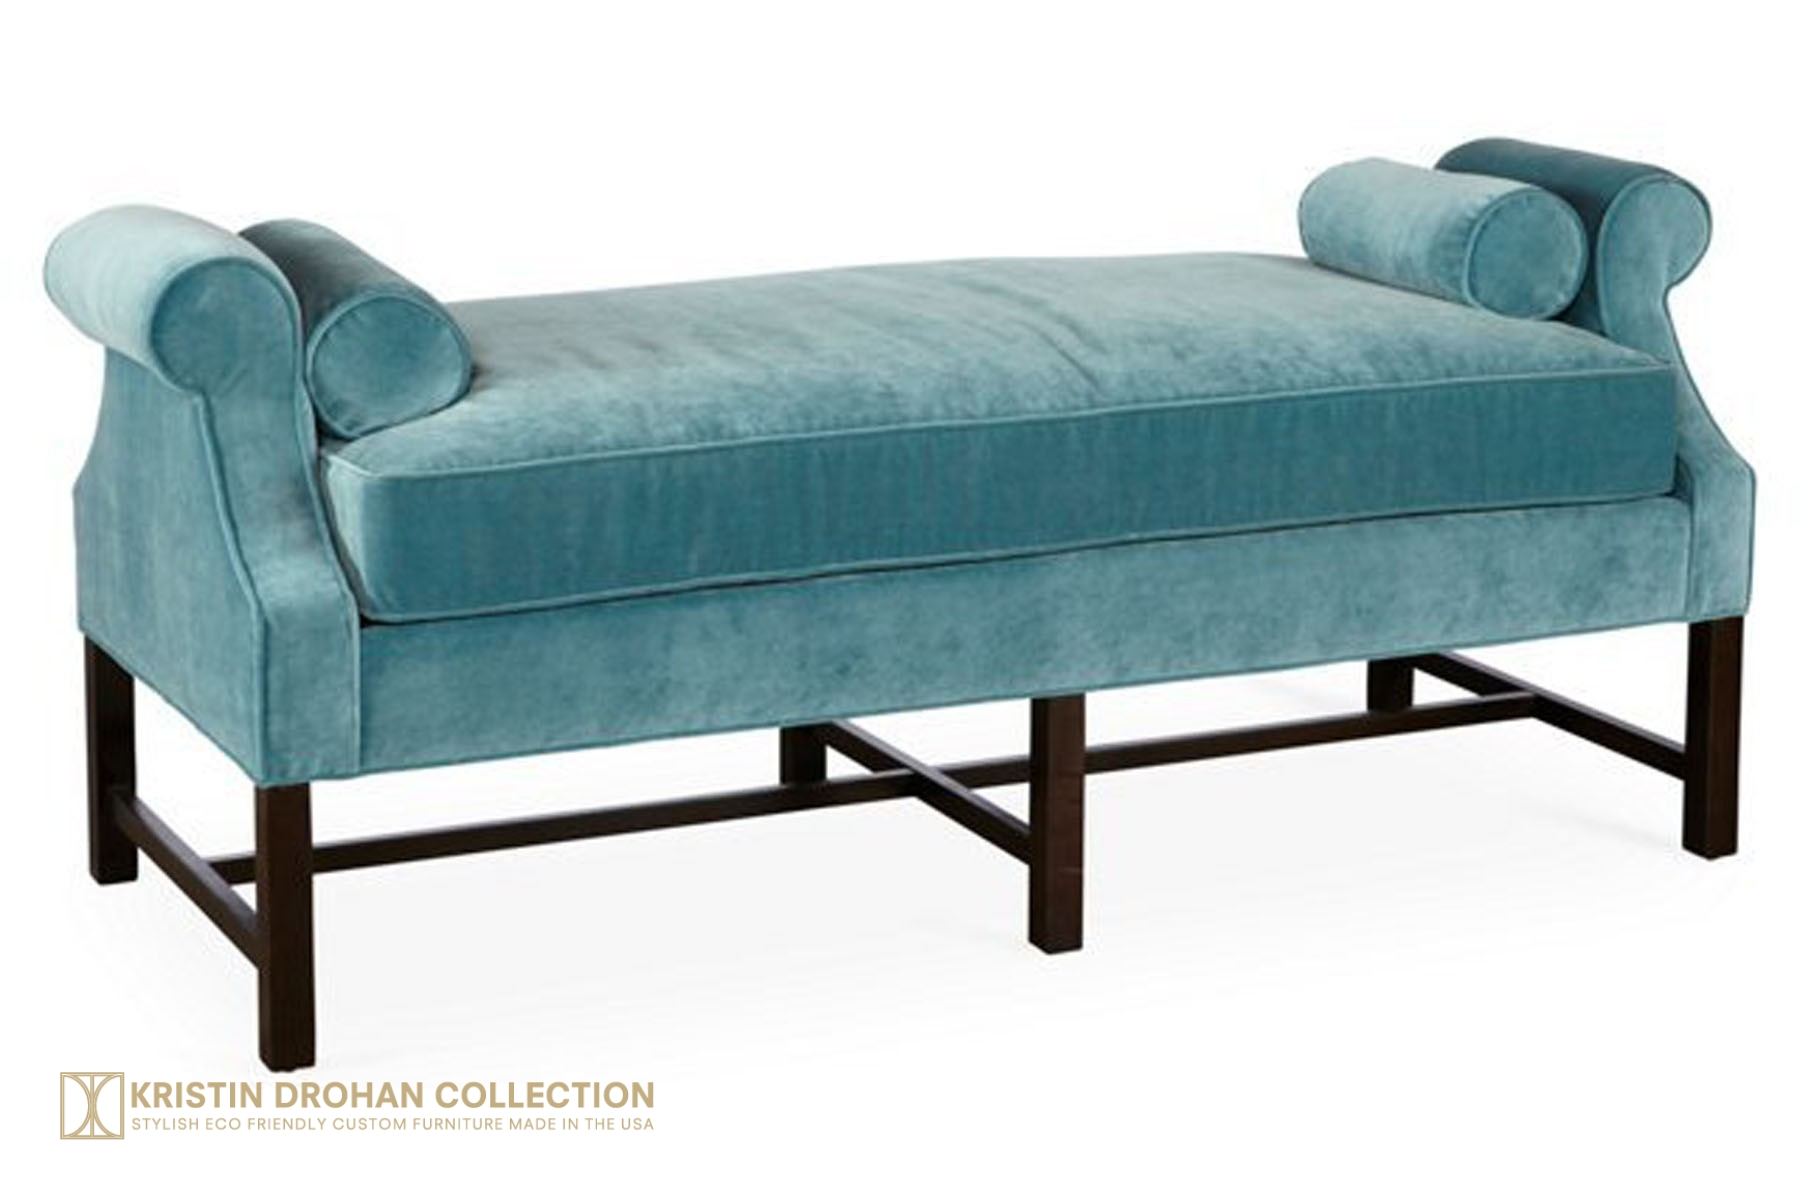 Anne Day Chaise Petite Banks calypso blue  sc 1 st  The Kristin Drohan Collection : day chaise - Sectionals, Sofas & Couches